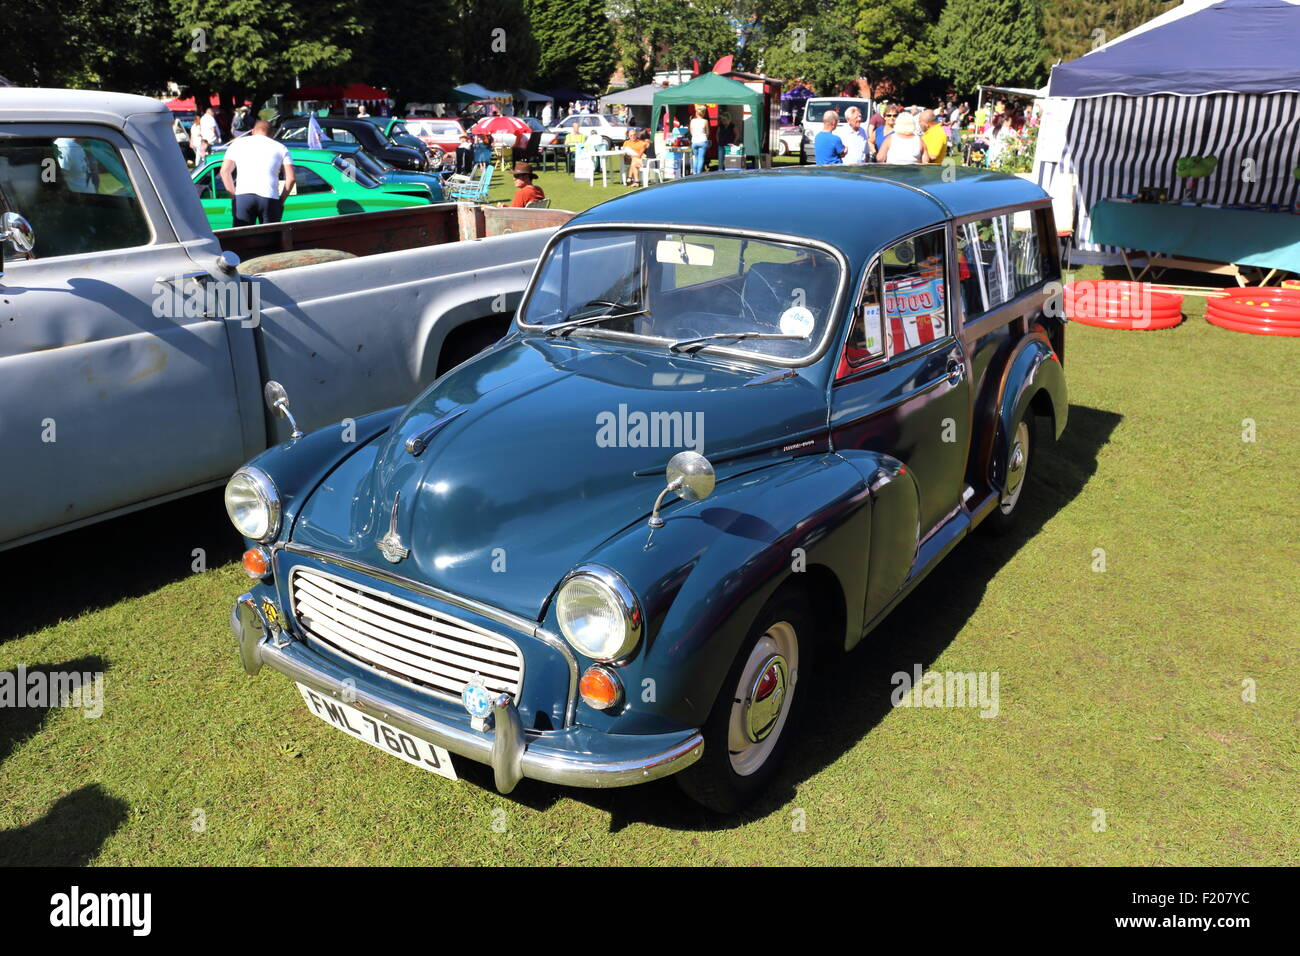 Morris Minor 1000 Traveller Estate at the Pontypridd Car Show in Ynysangharad War Memorial Park, August 2015 - Stock Image